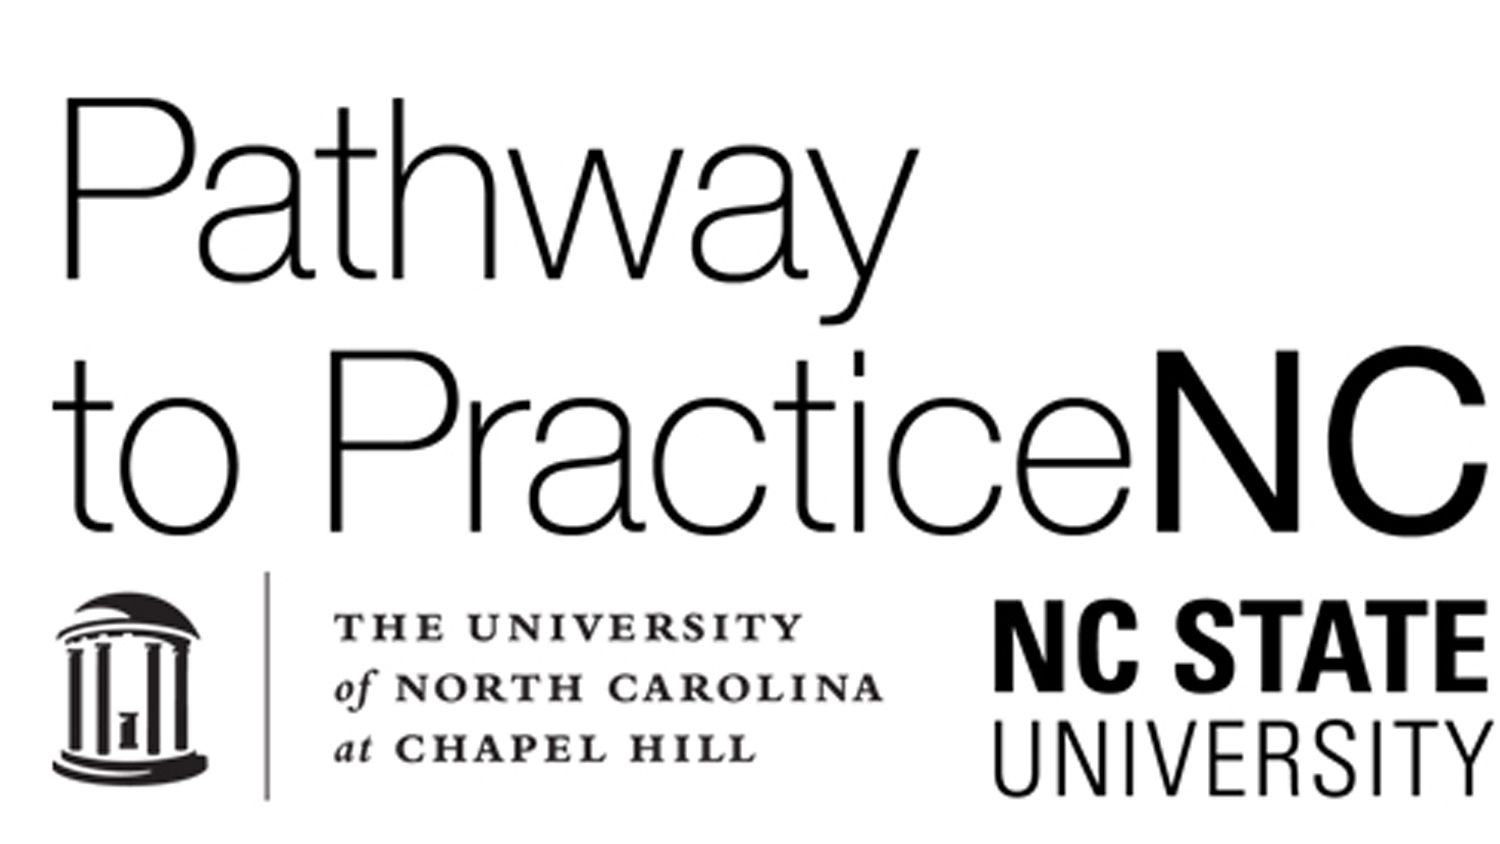 Applications open for joint unc chapel hill nc state lateral applications open for joint unc chapel hill nc state lateral entry teacher program college of education nc state university xflitez Image collections